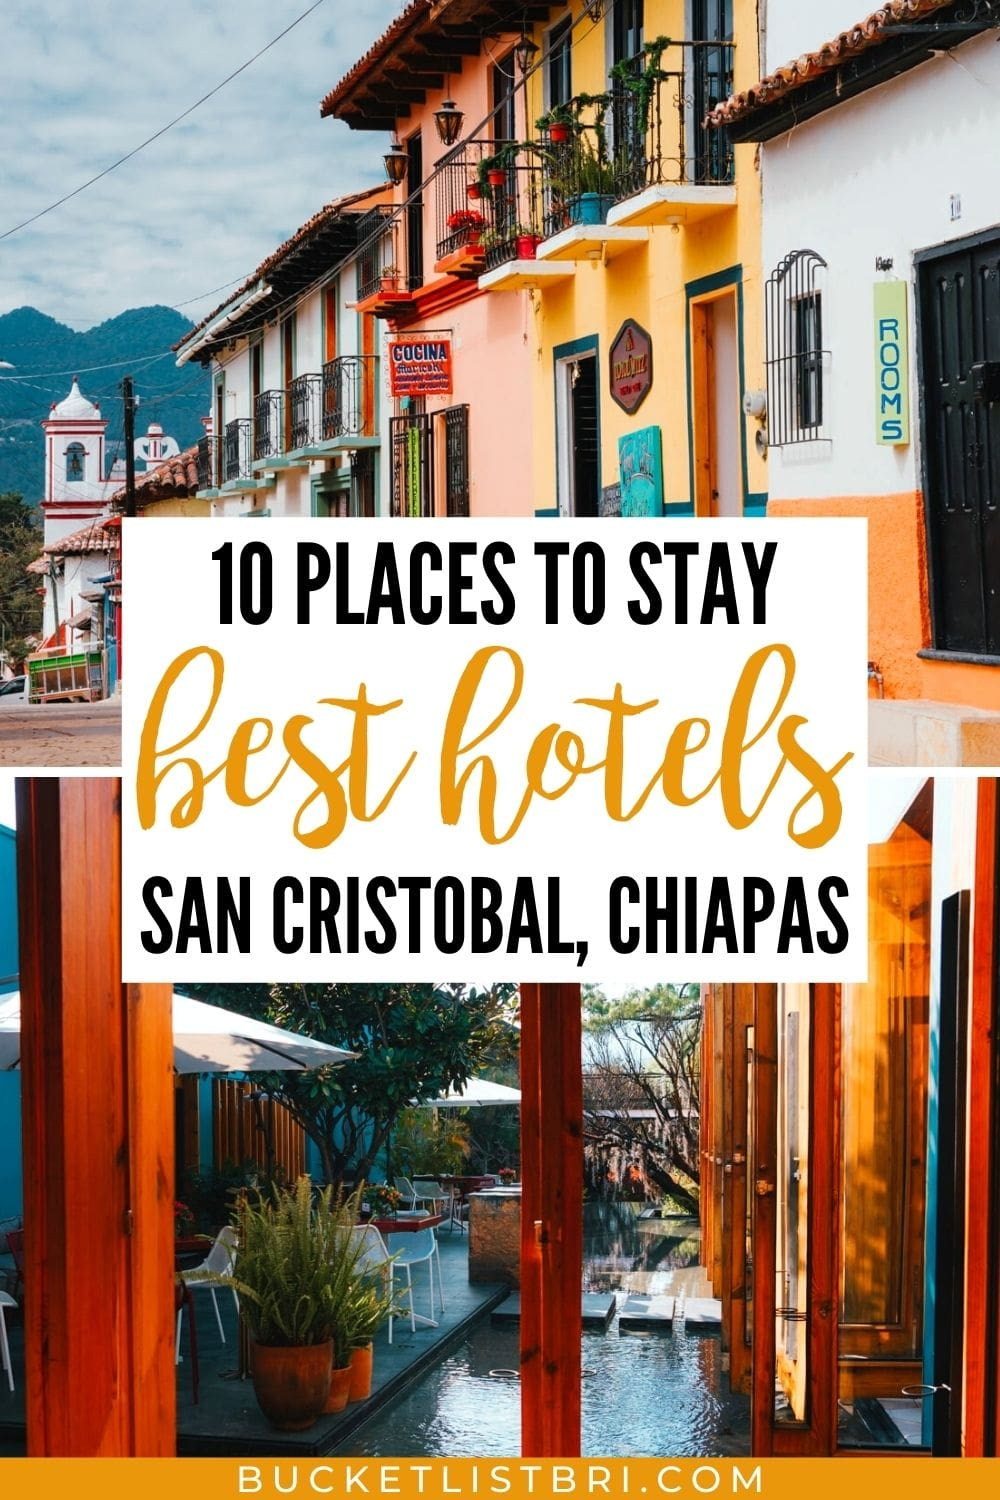 best hotels in san cristobal pinterest pin with text overlay